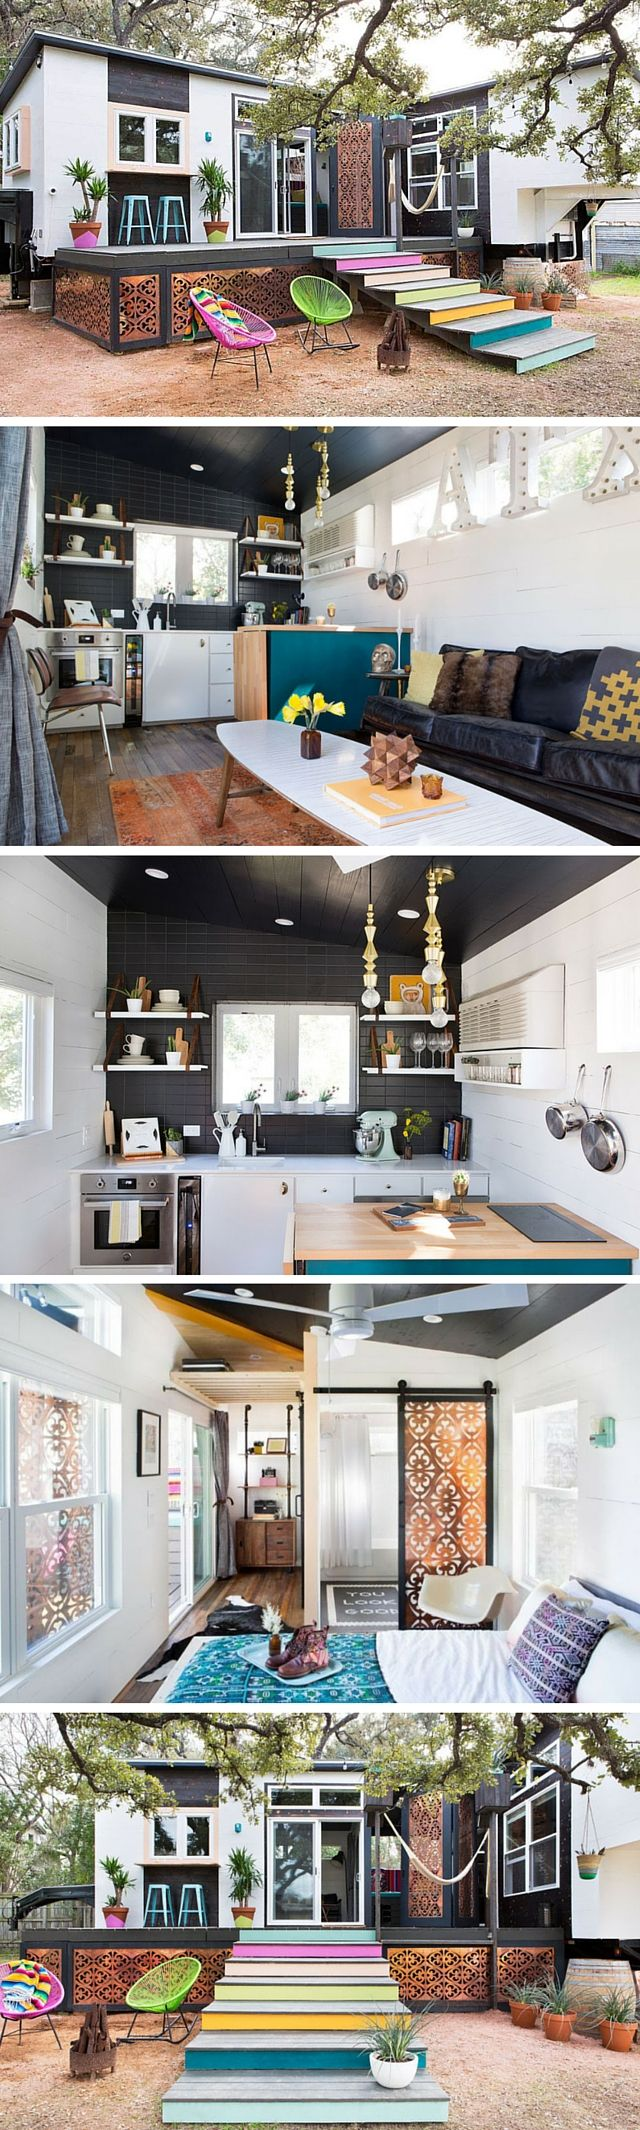 Best 25+ Small Home Interior Design Ideas On Pinterest | Small House  Interiors, Small Dream Homes And Small Cottage Homes